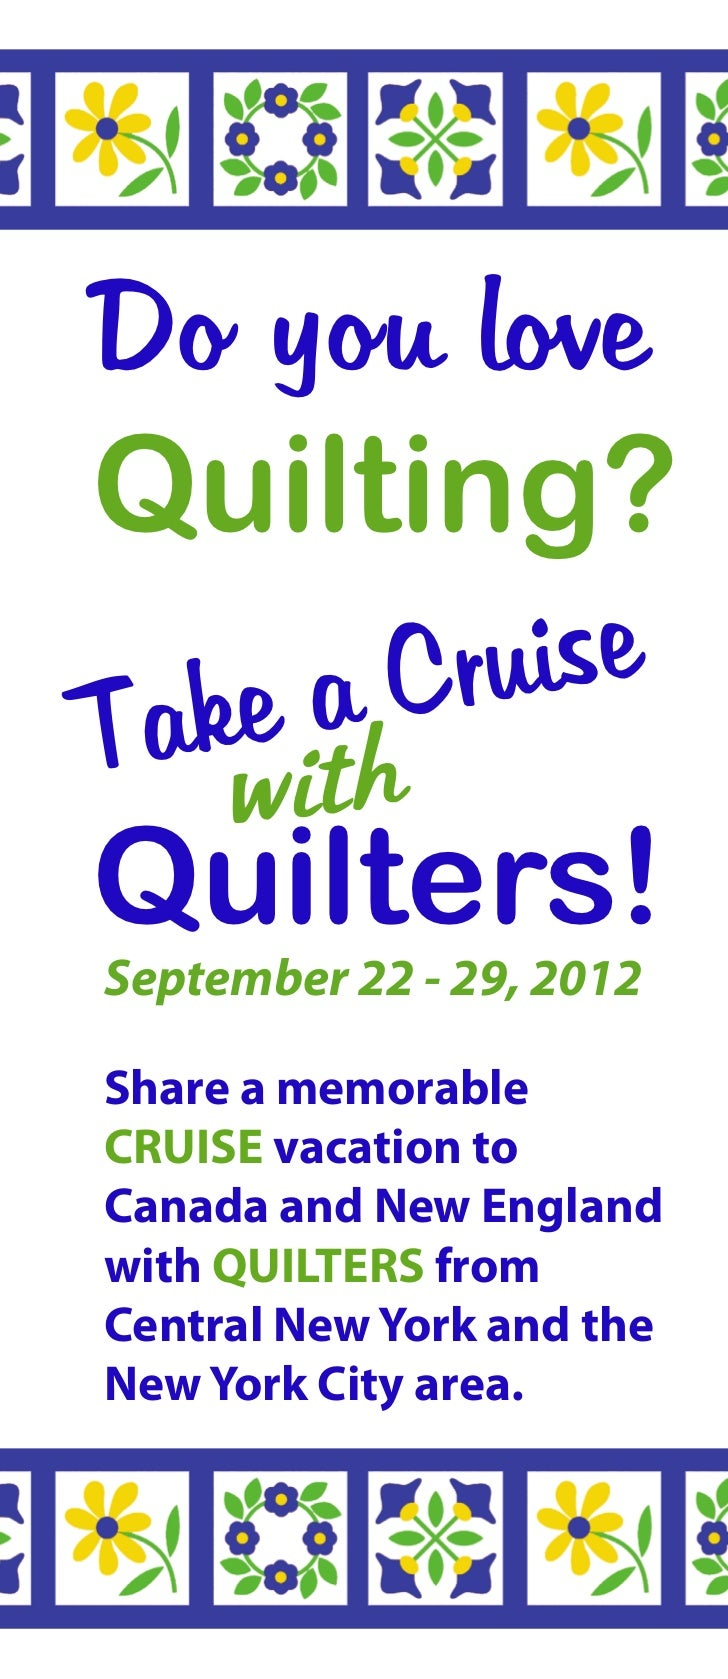 Do you loveQuilting?T ake a Cruise     withQuilters!September 22 - 29, 2012Share a memorableCRUISE vacation toCanada and N...